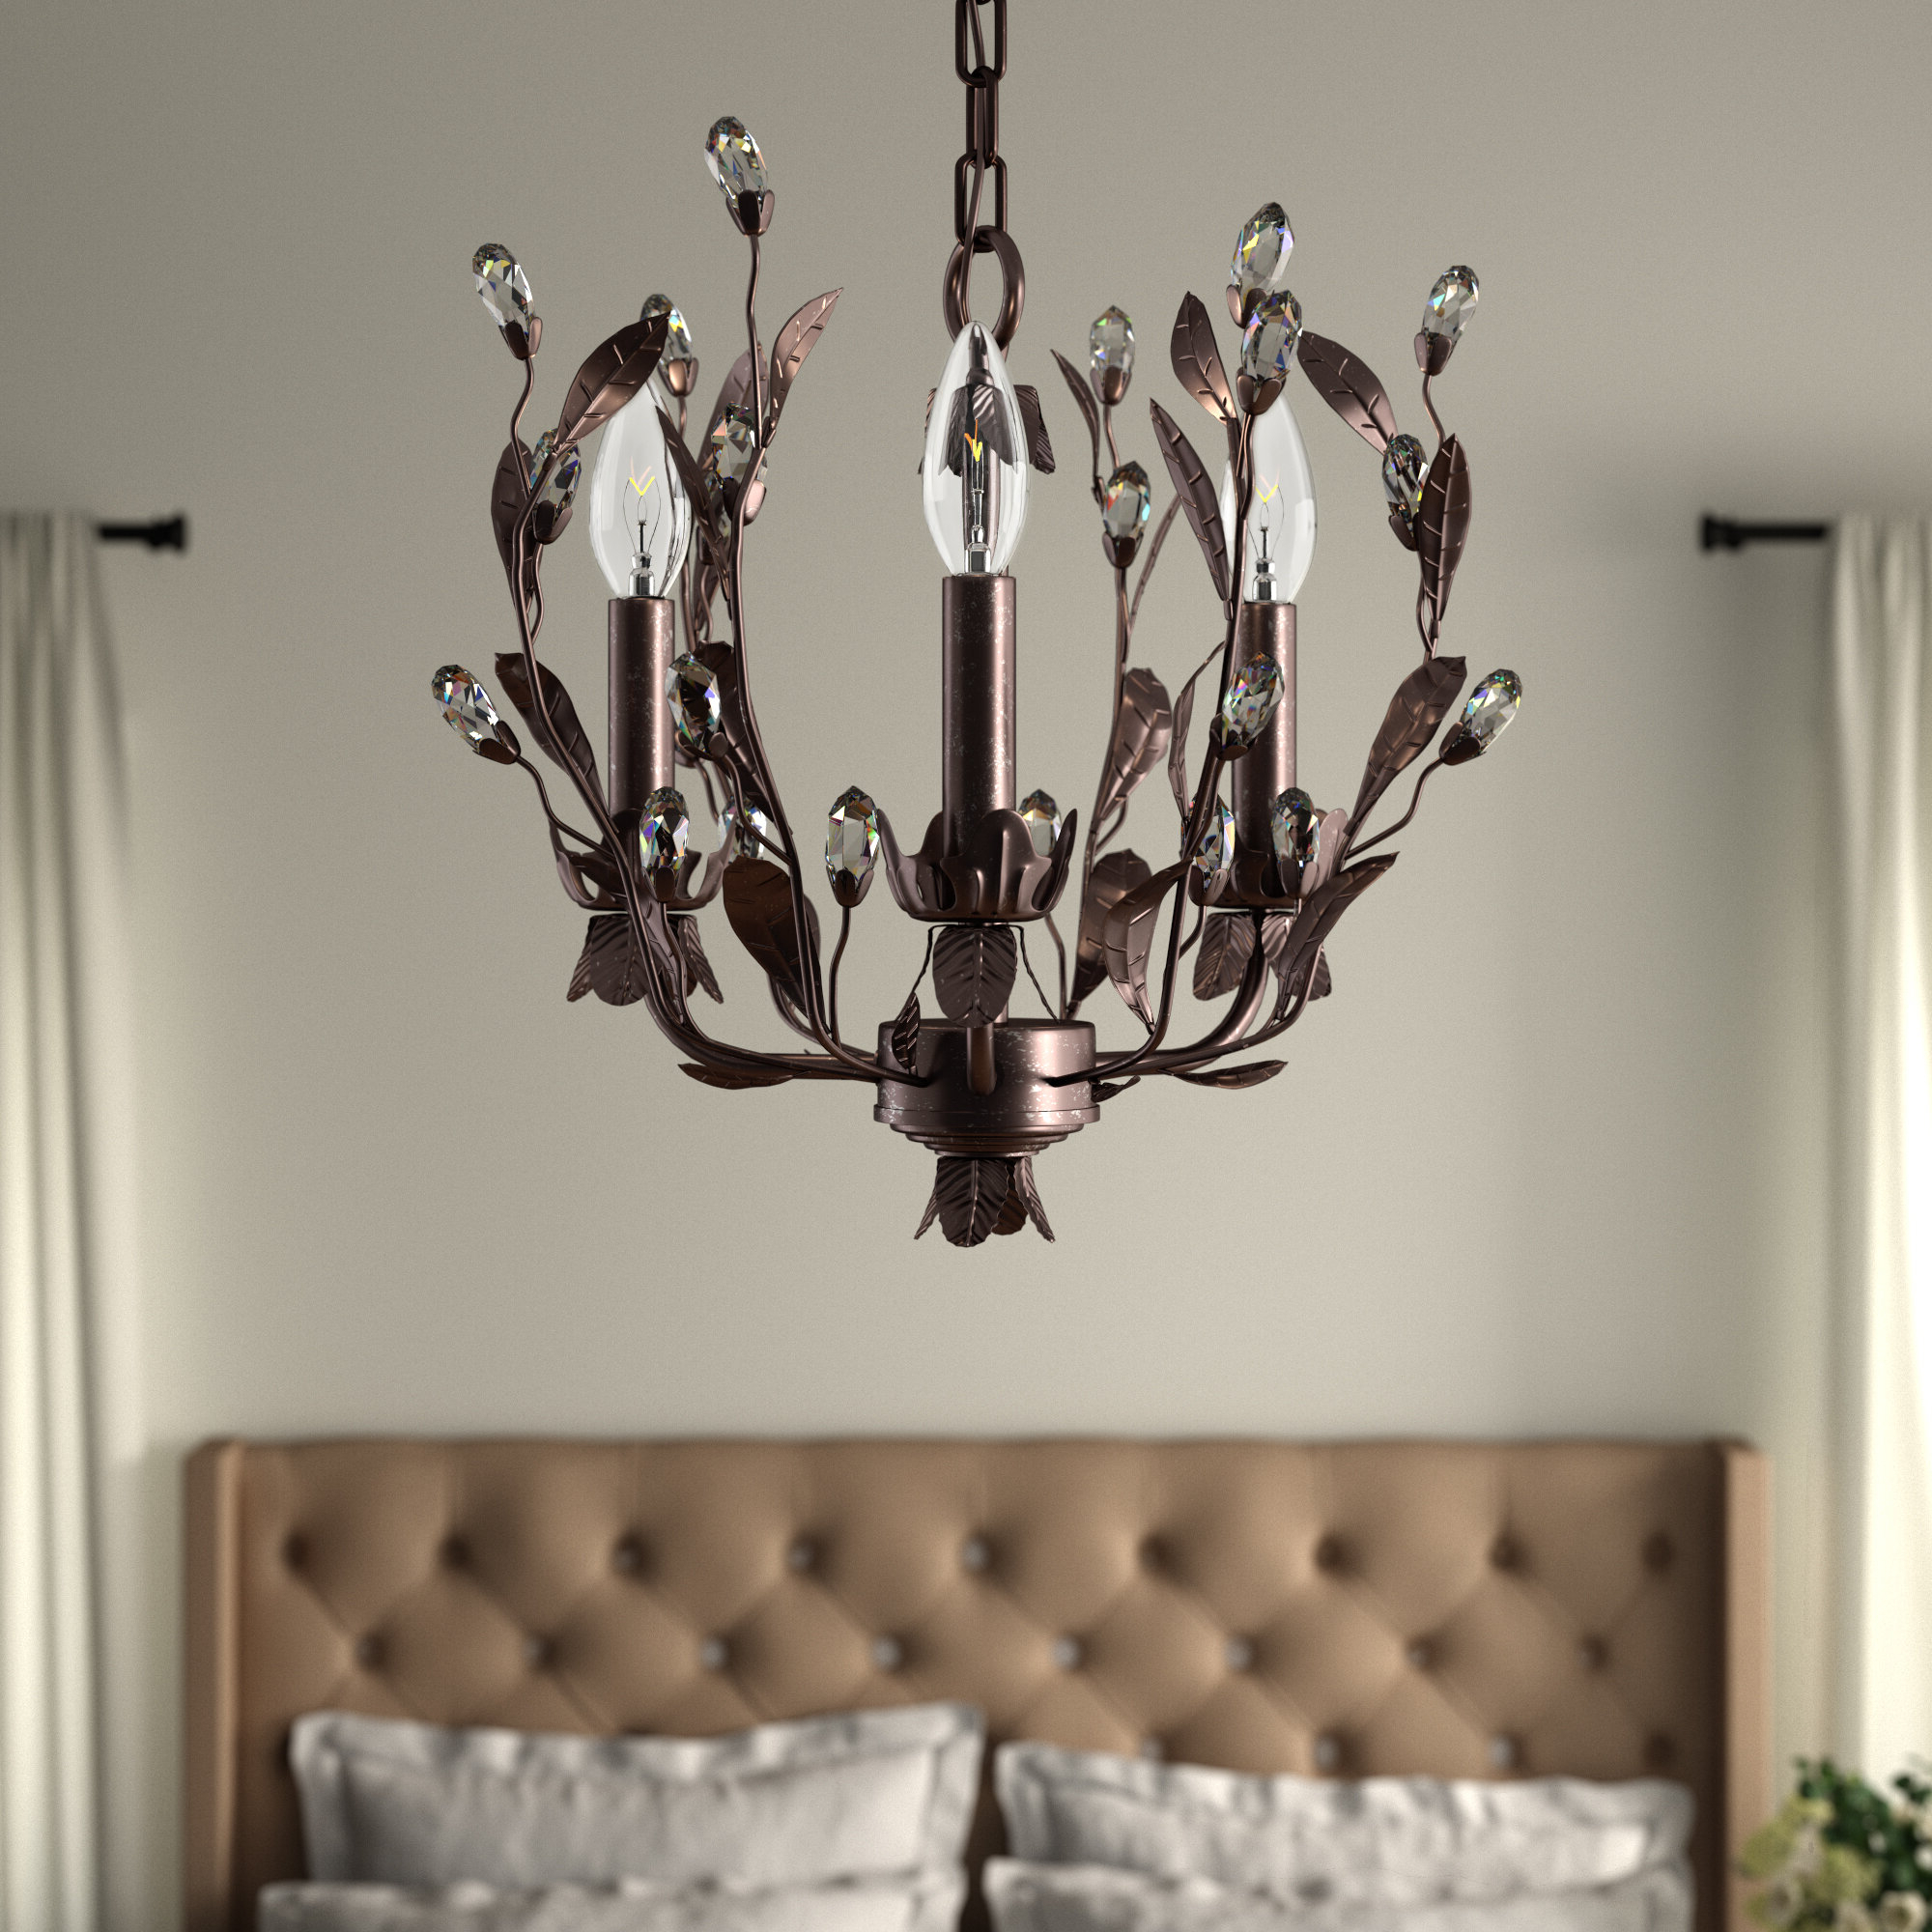 Giovanna 3 Light Candle Style Chandelier Within Preferred Hesse 5 Light Candle Style Chandeliers (View 8 of 20)